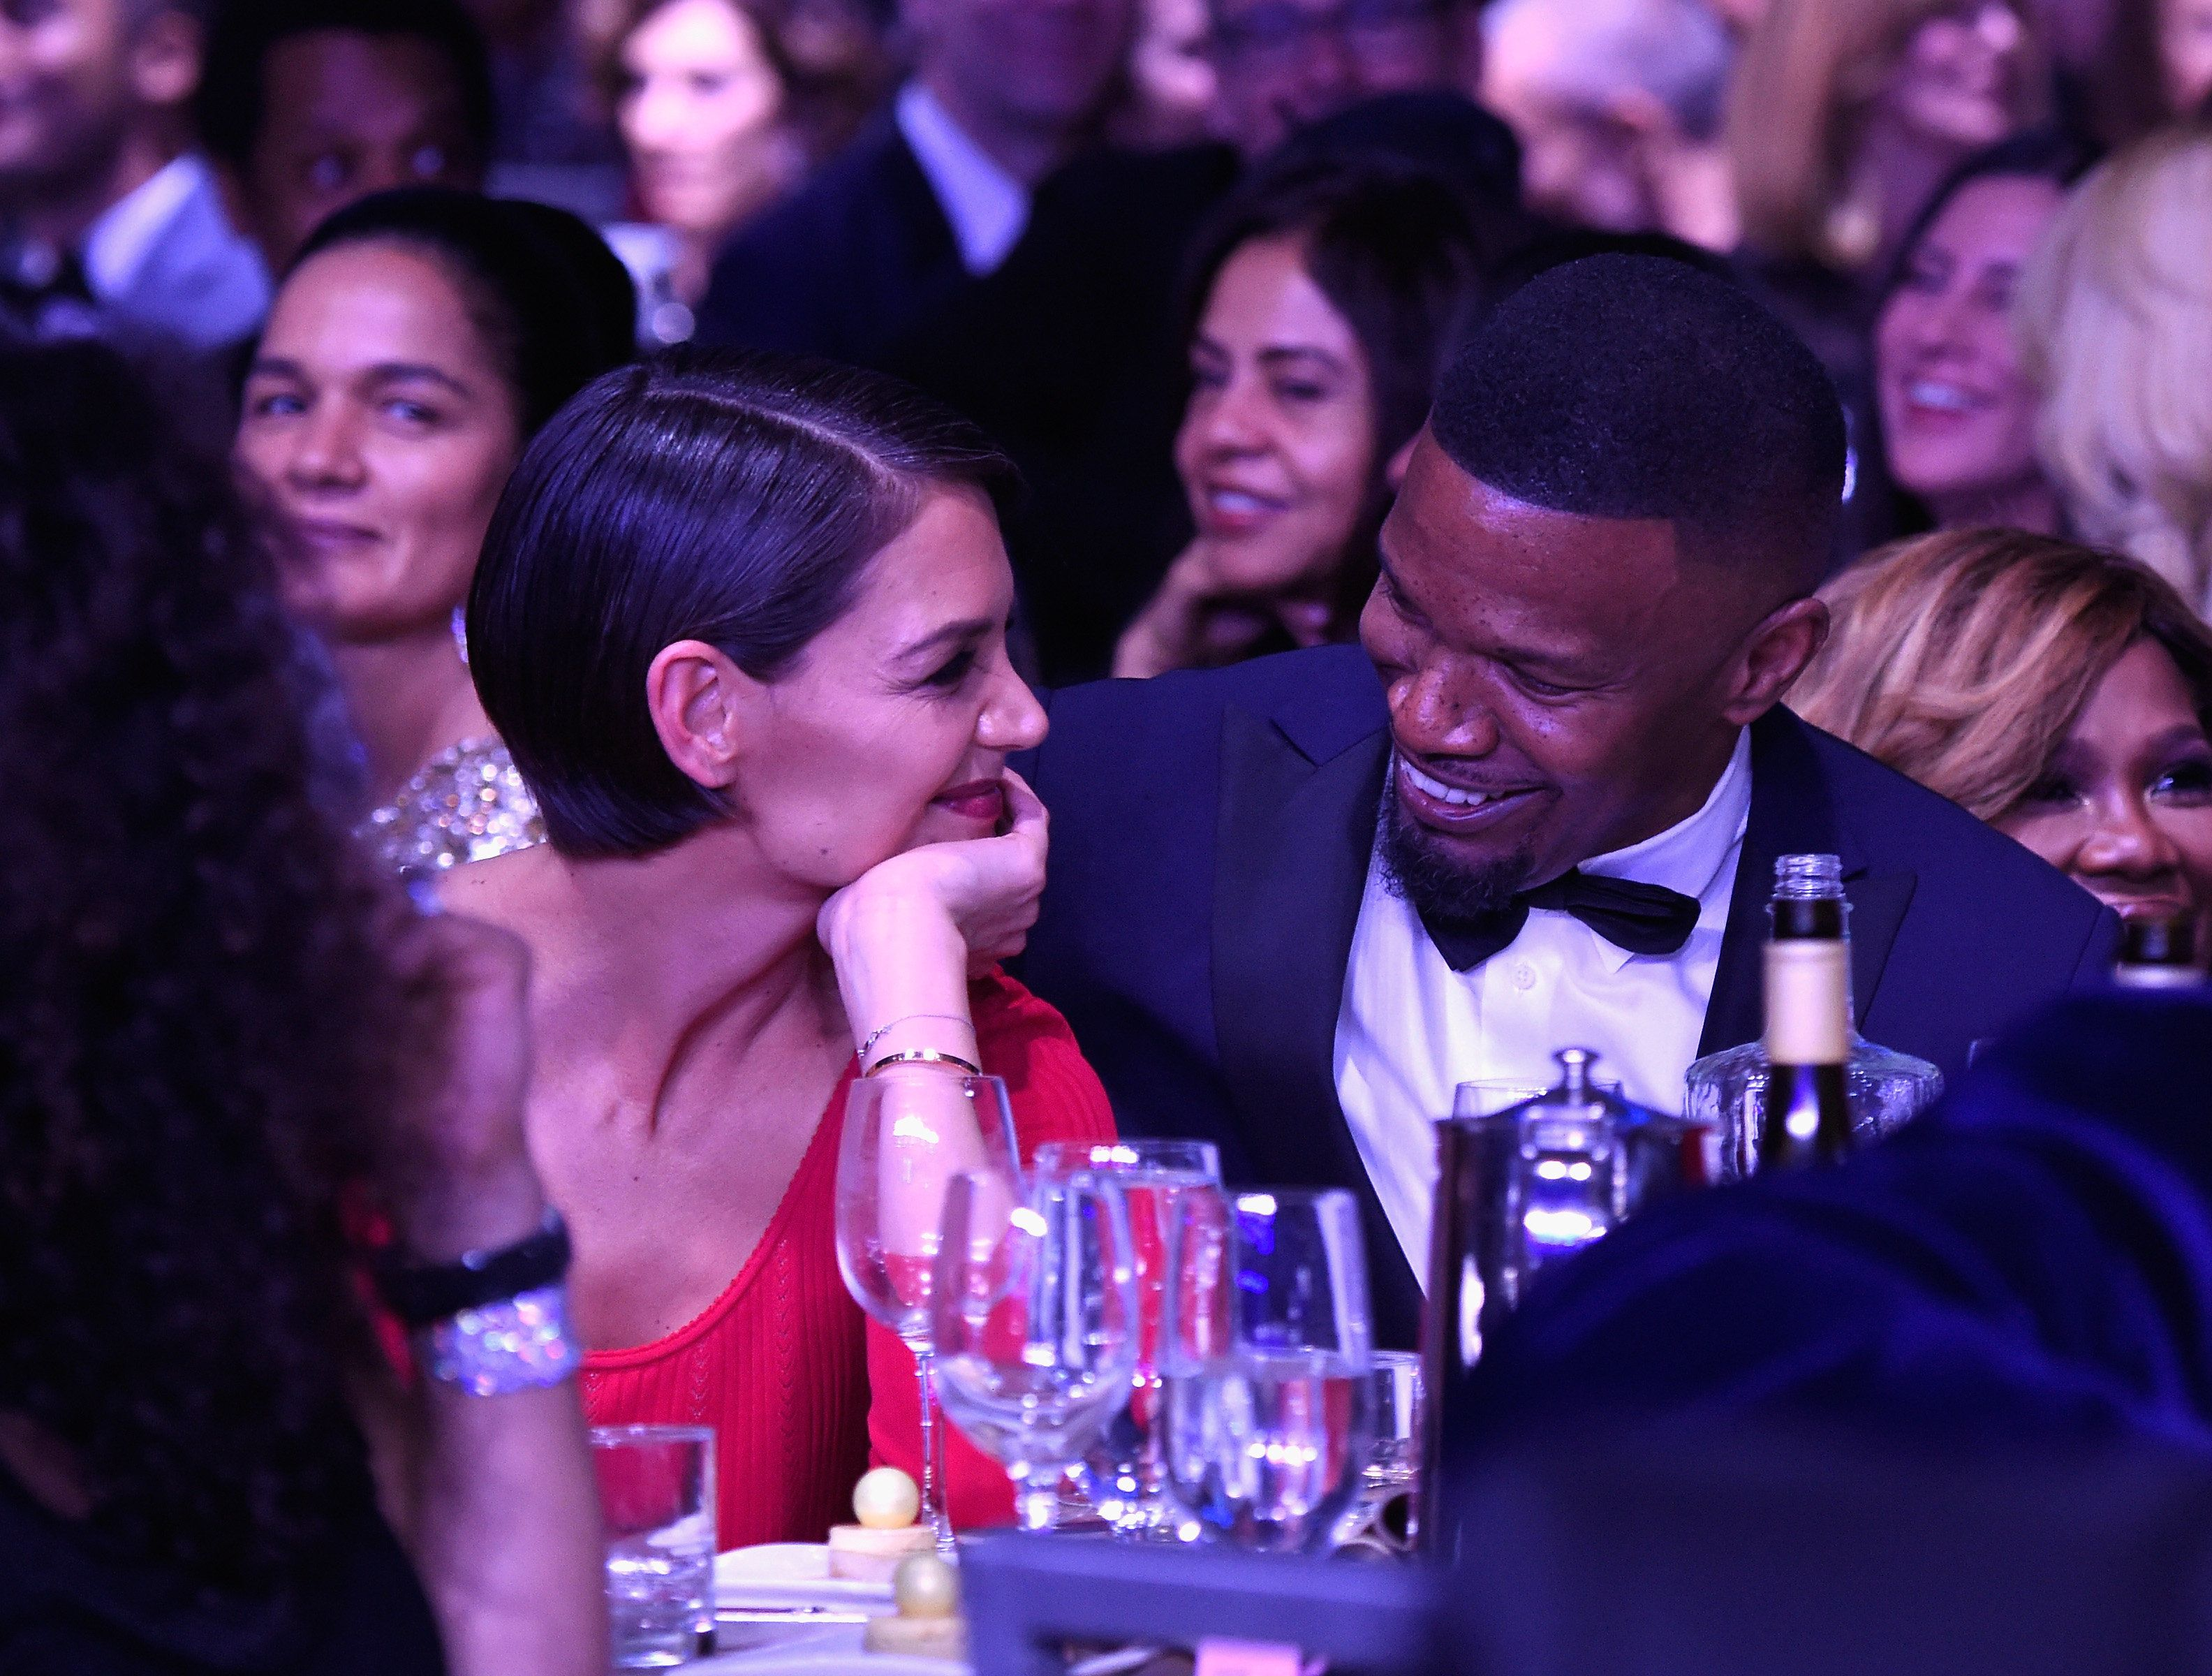 Katie Holmes and Jamie Foxx smile at each other at a pre-Grammy Awards event on Saturday night.